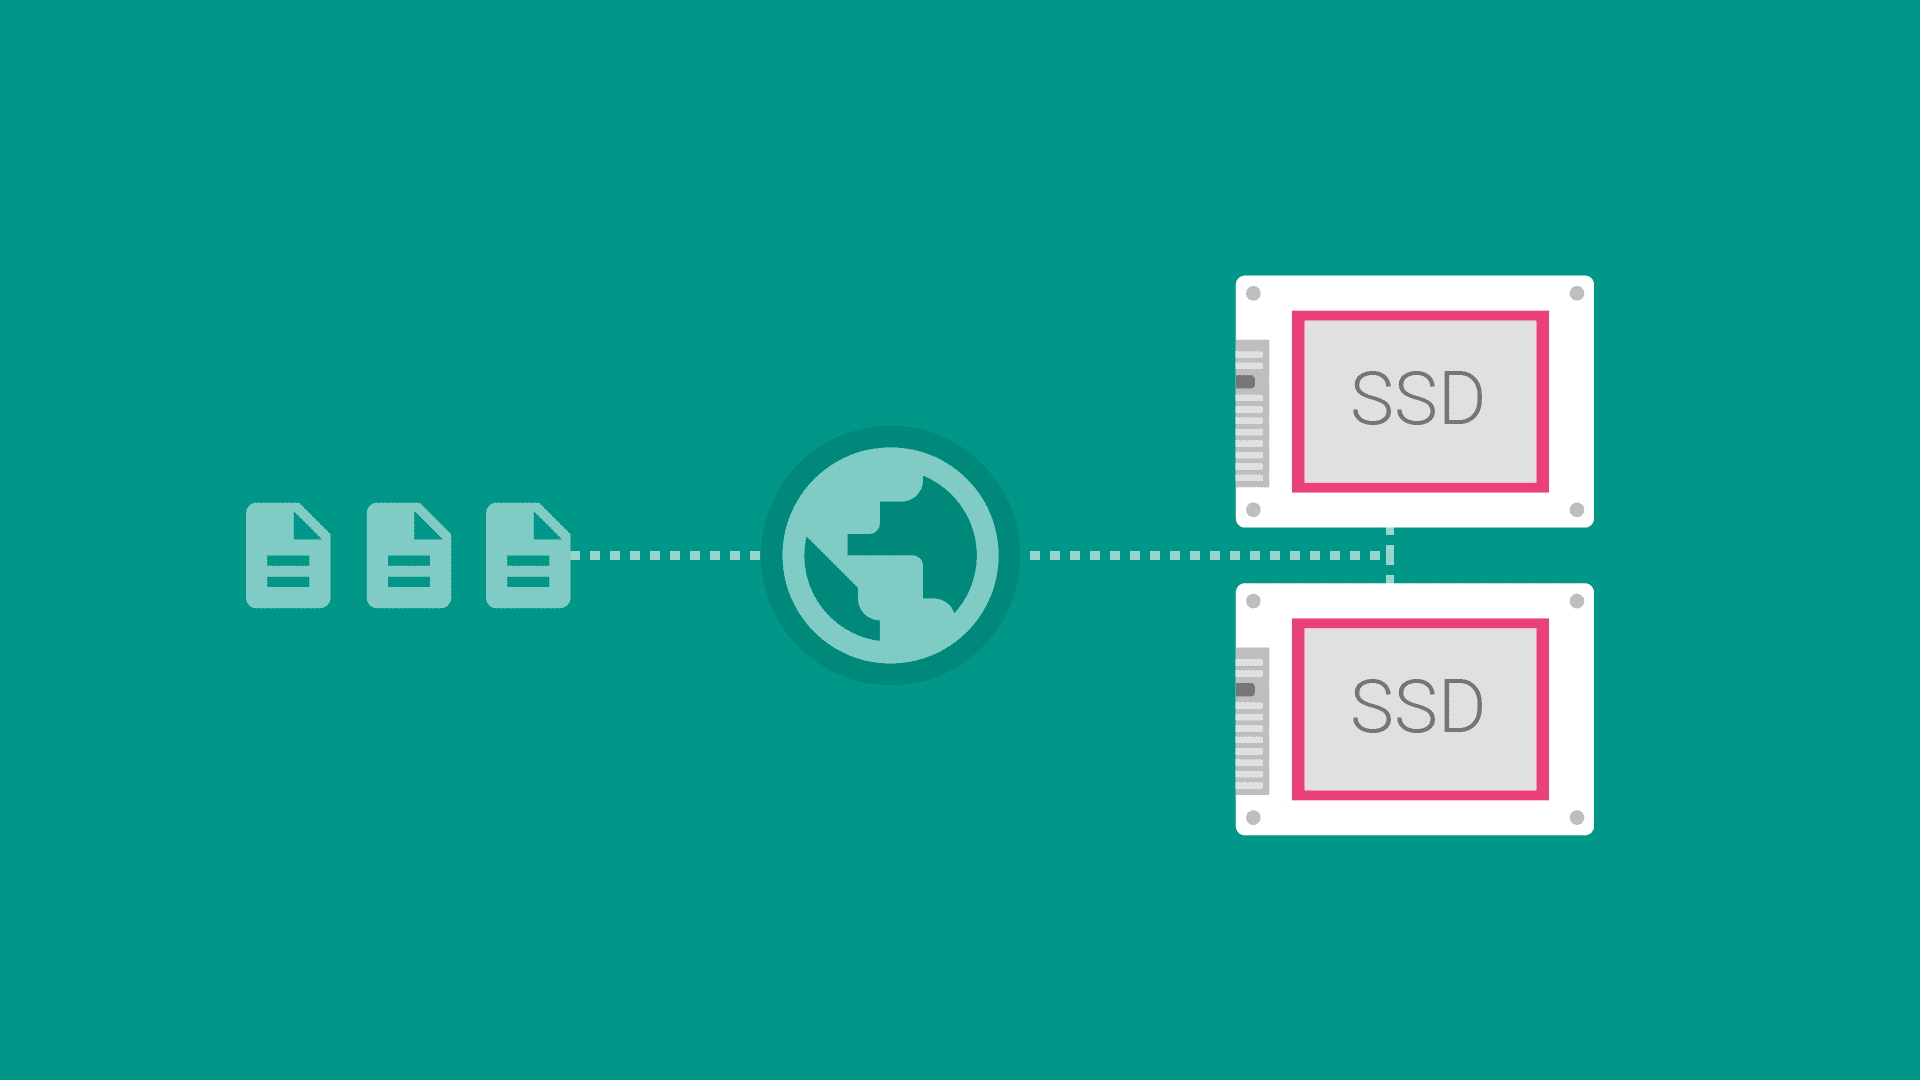 Ilustrasi diagram hosting SSD